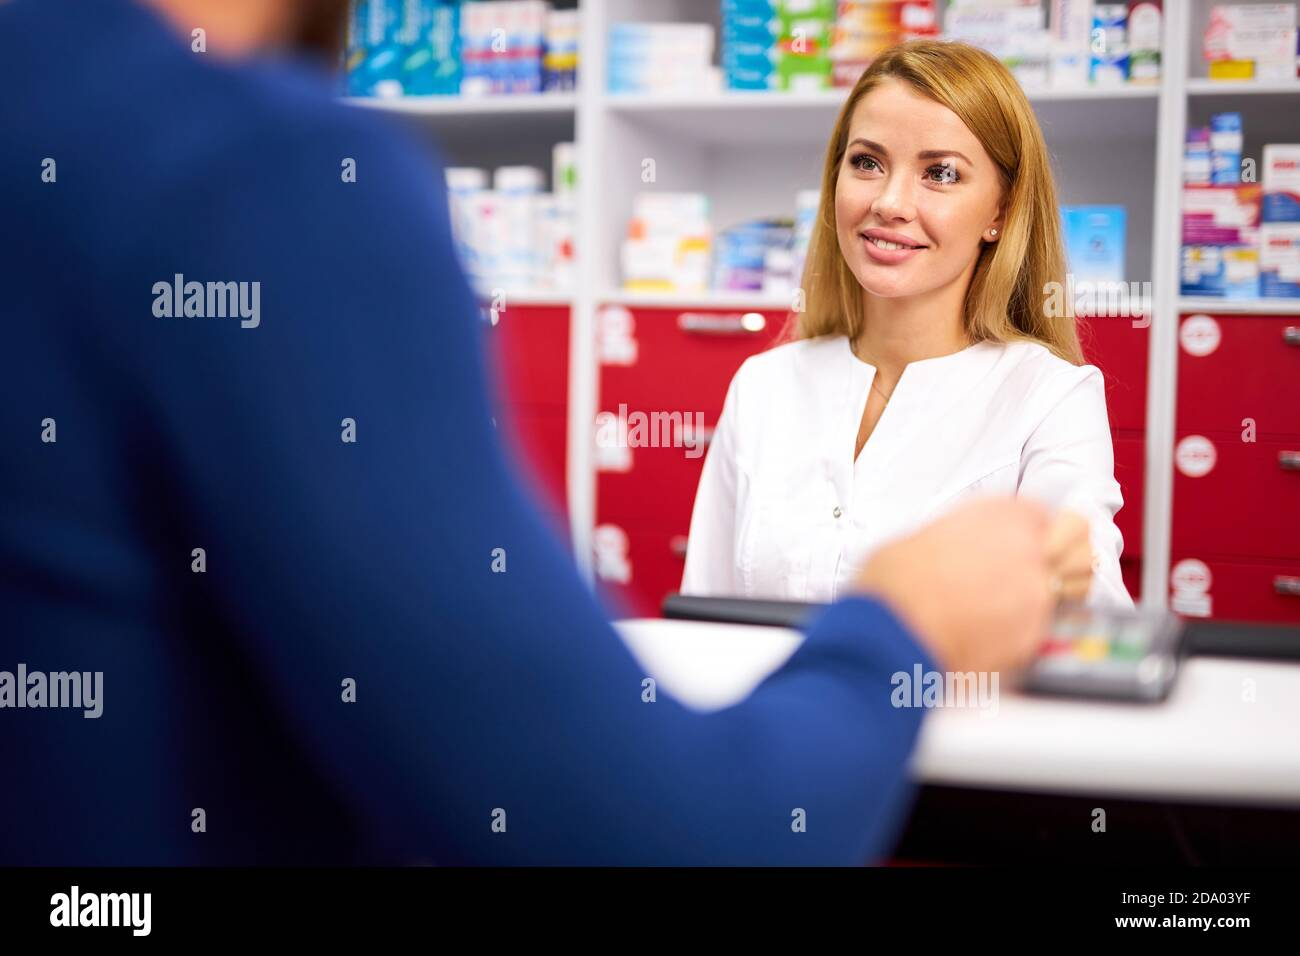 young beautiful caucasian pharmacist is working with customer in modern drugstore, serve the client, wearing white medical gown Stock Photo